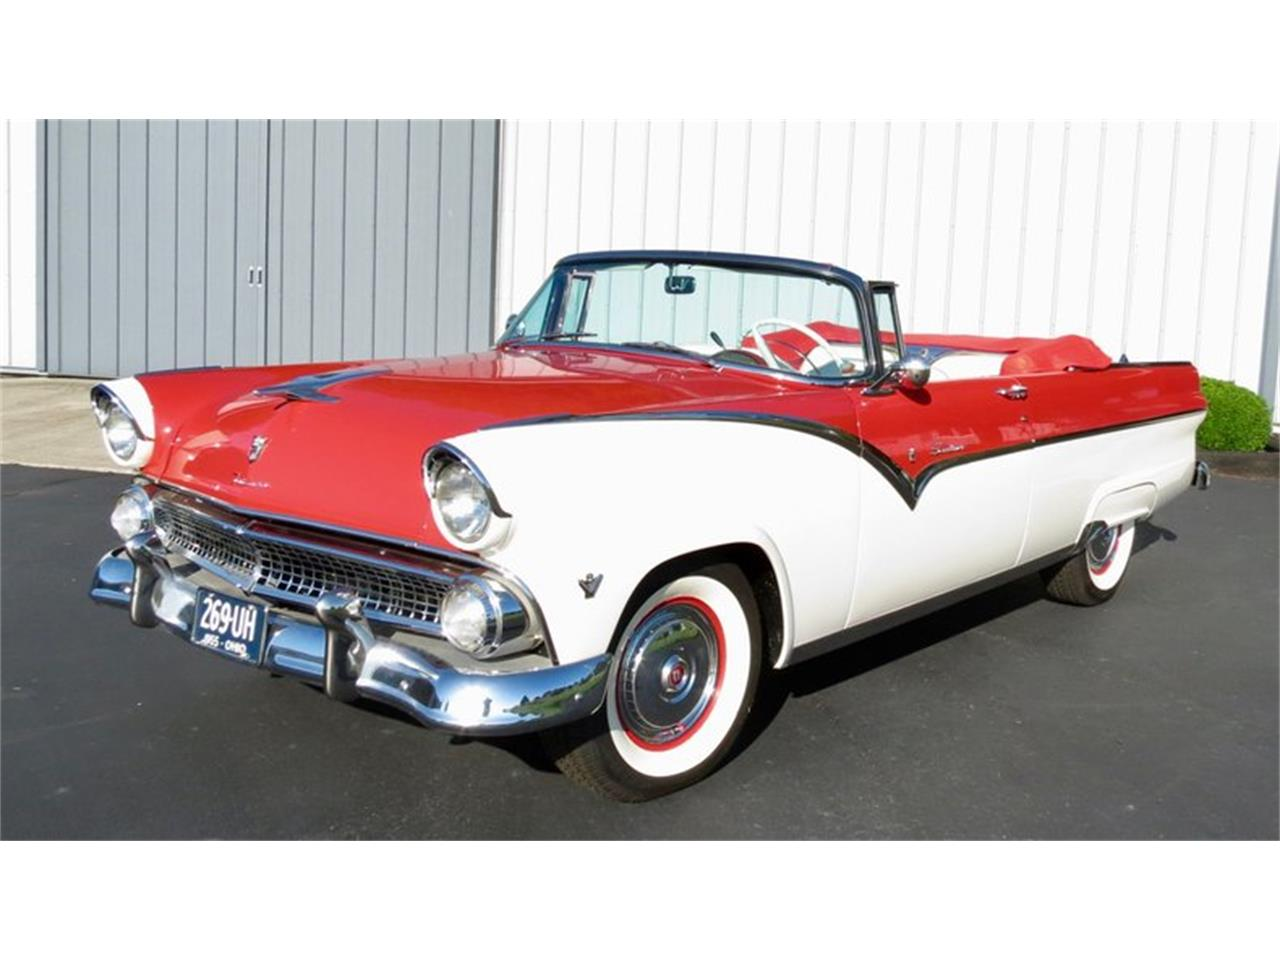 Large Picture of '55 Ford Fairlane located in Ohio - $38,500.00 Offered by Classic Car Connection - QU8Q